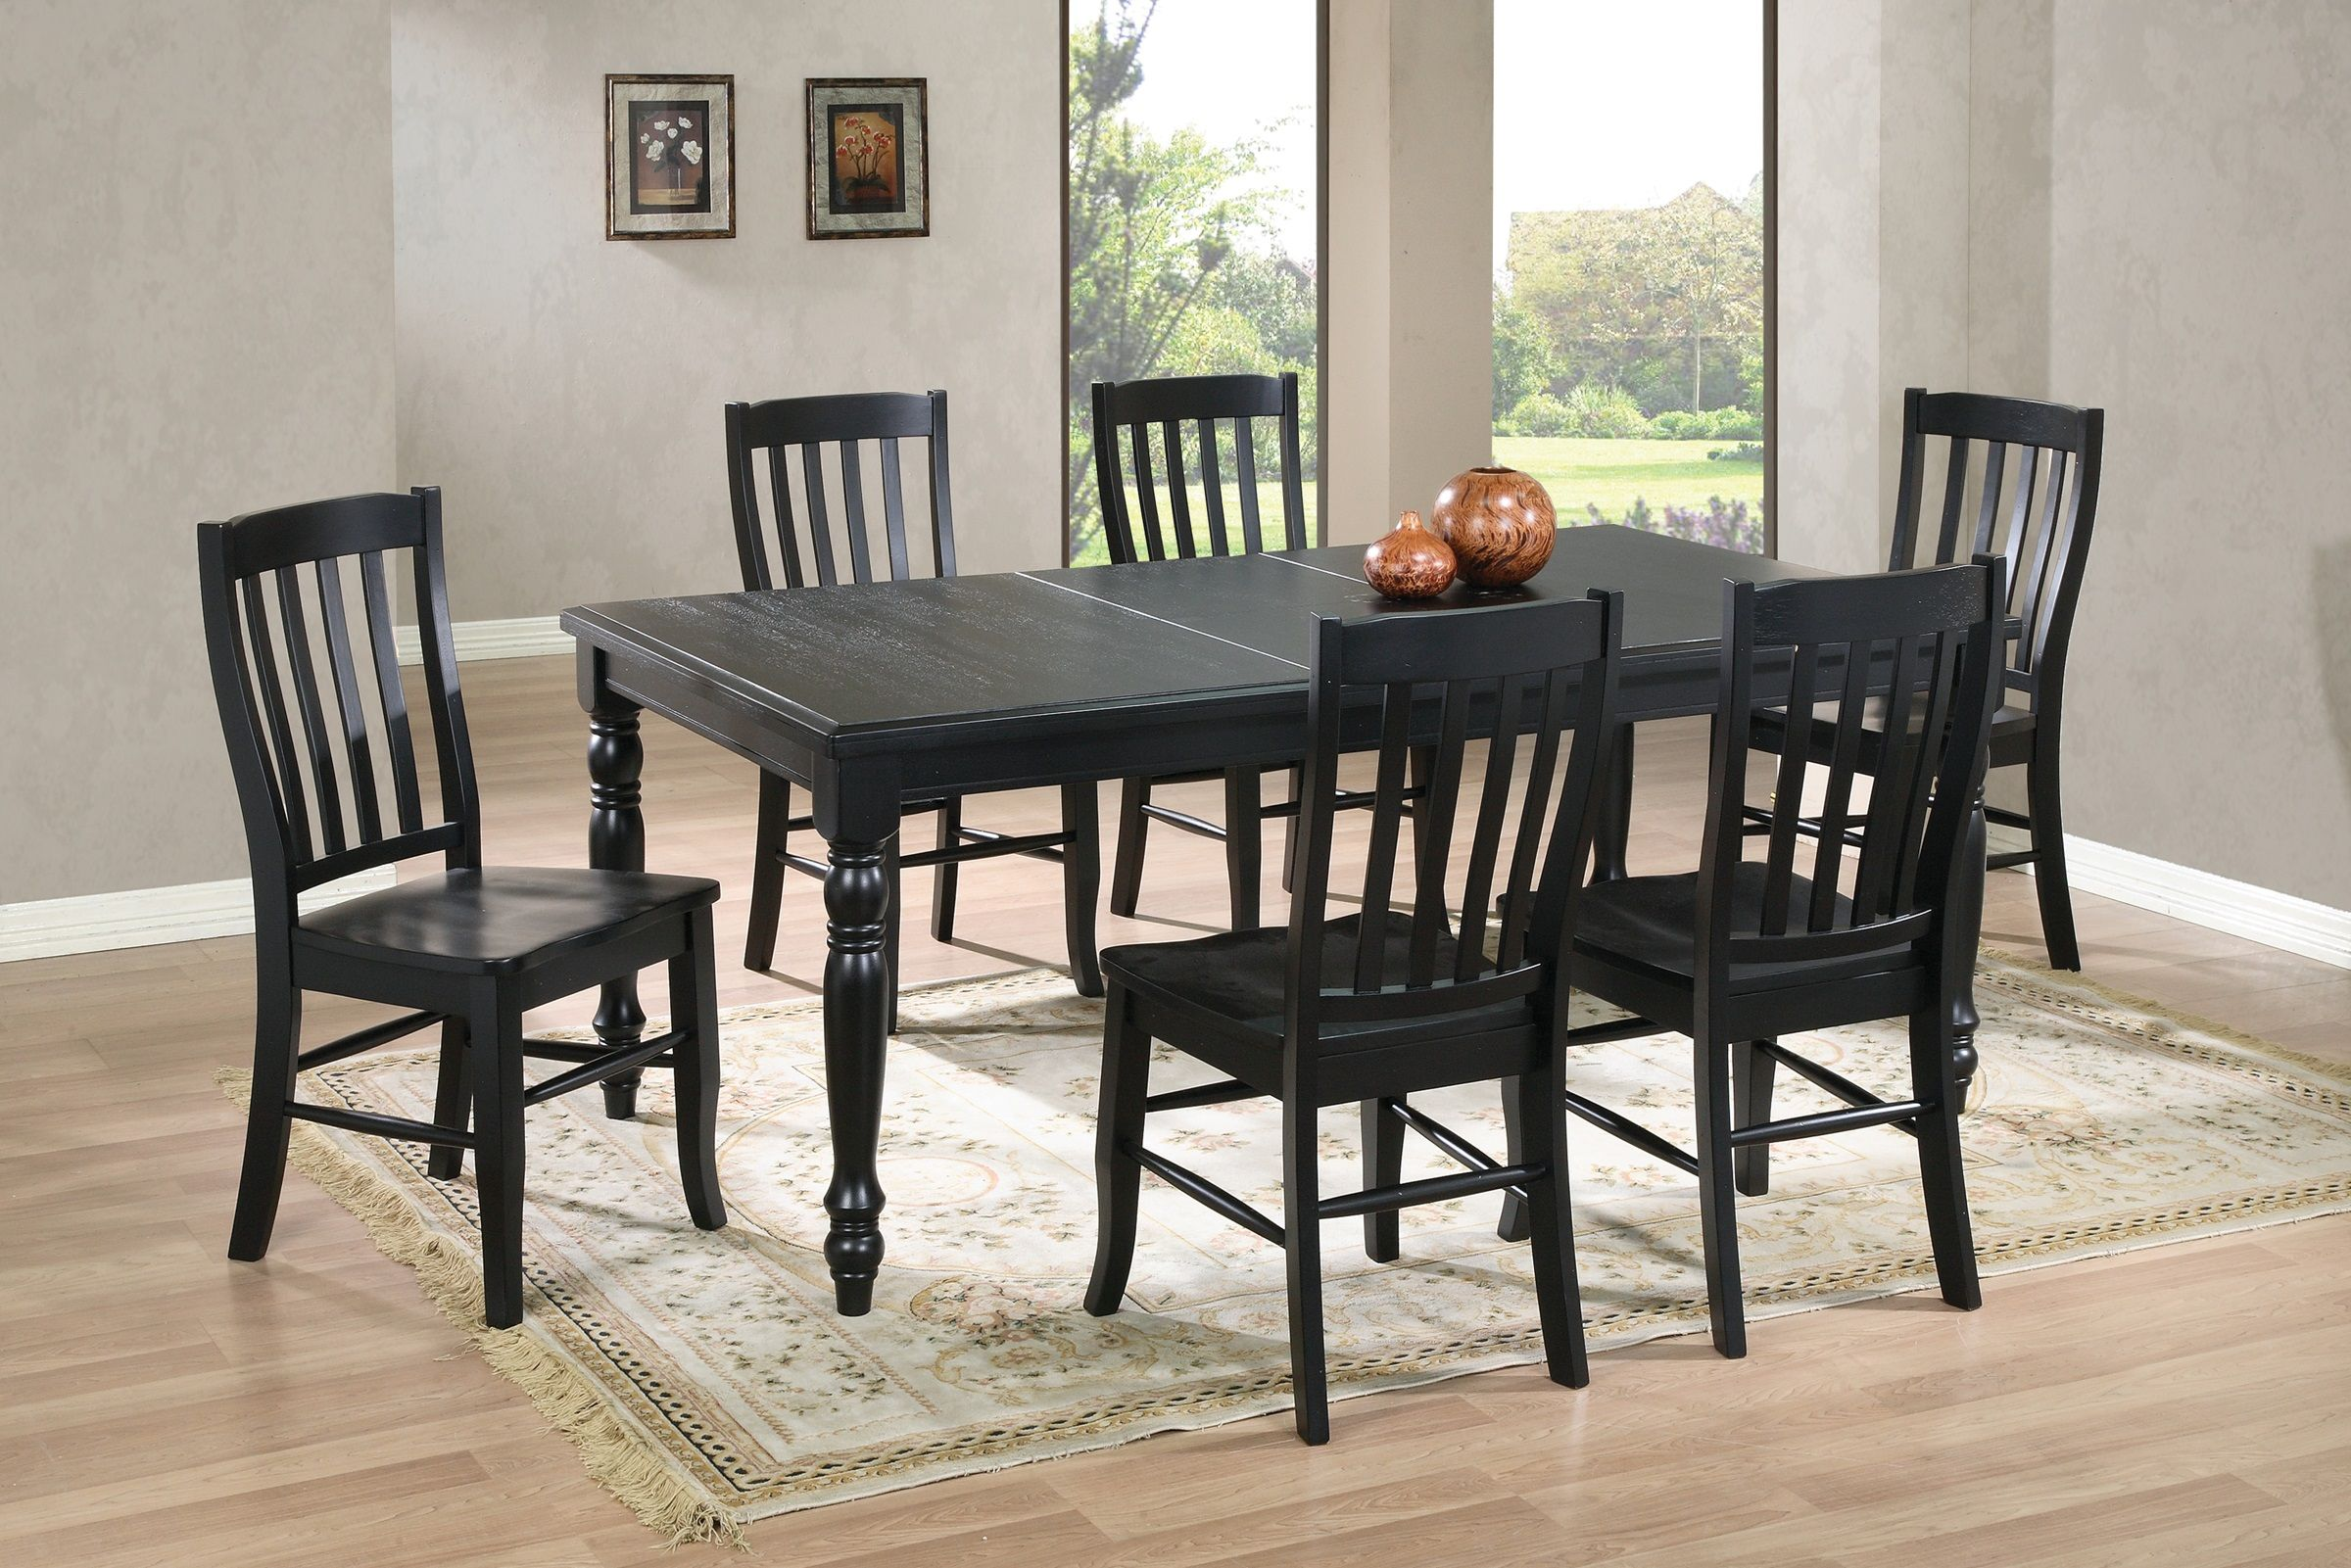 Quail Run Leg Table Large By Winners Only At Crowley Furniture In Kansas City